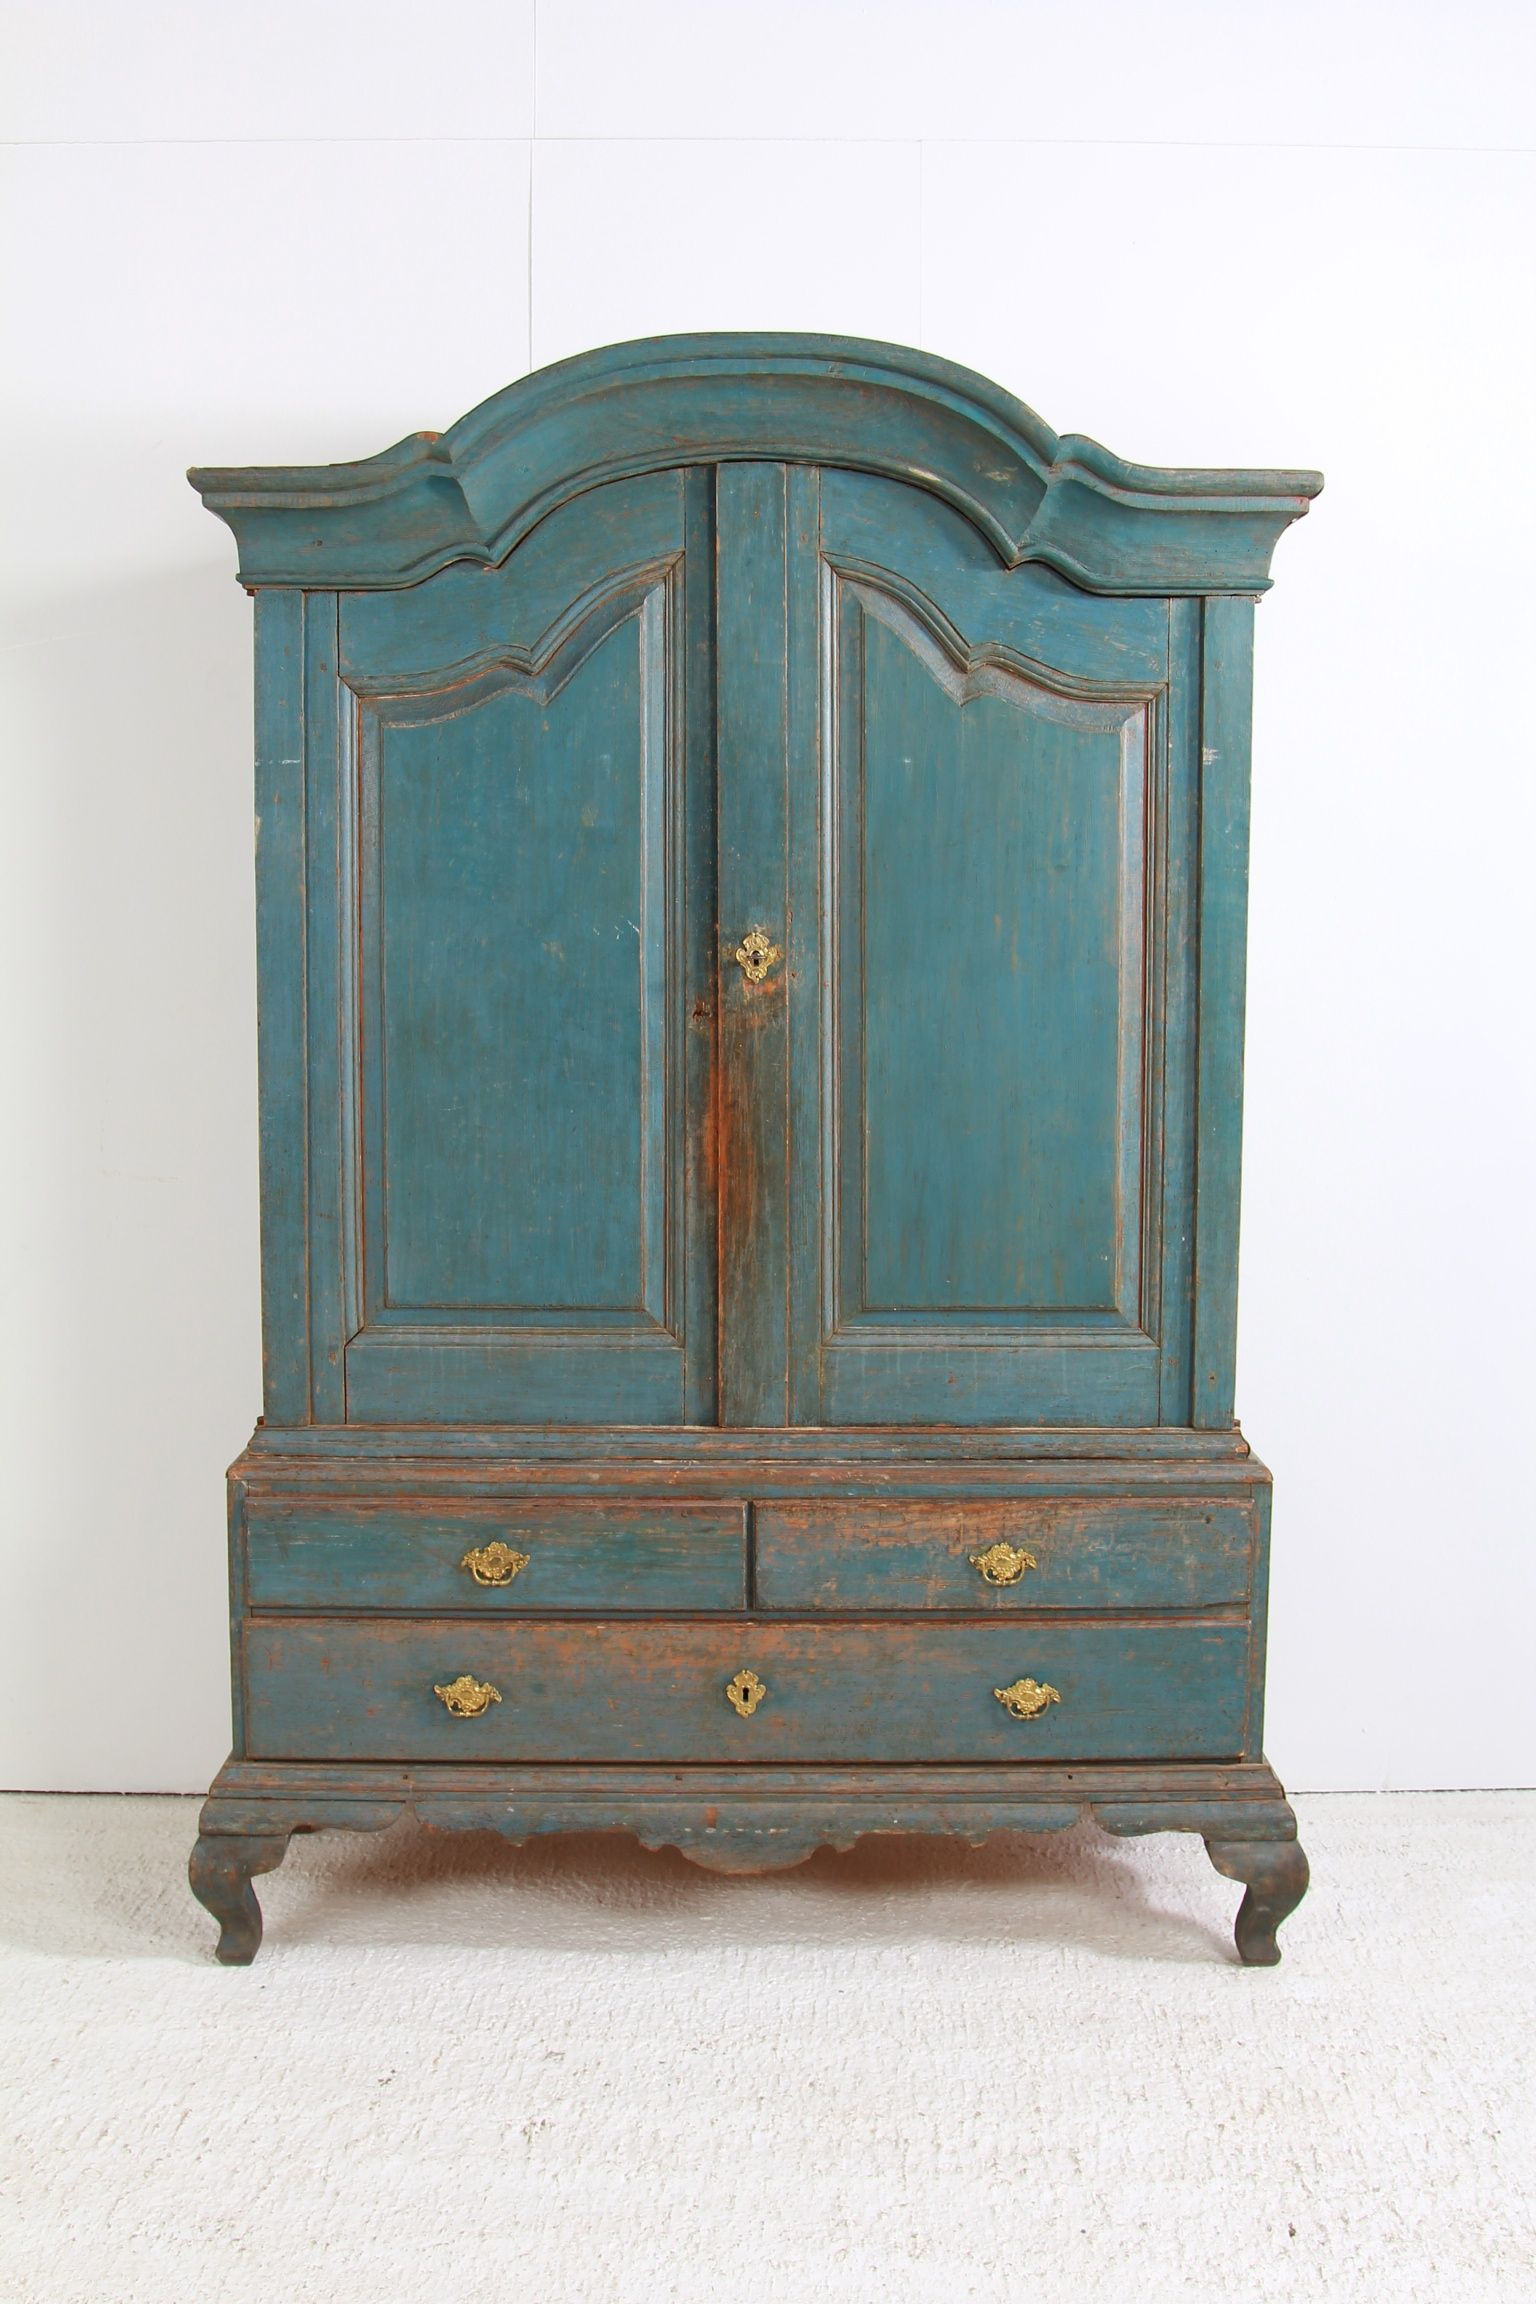 Swedish Cabinet With Original Blue Patina,At Anton & K Antiques